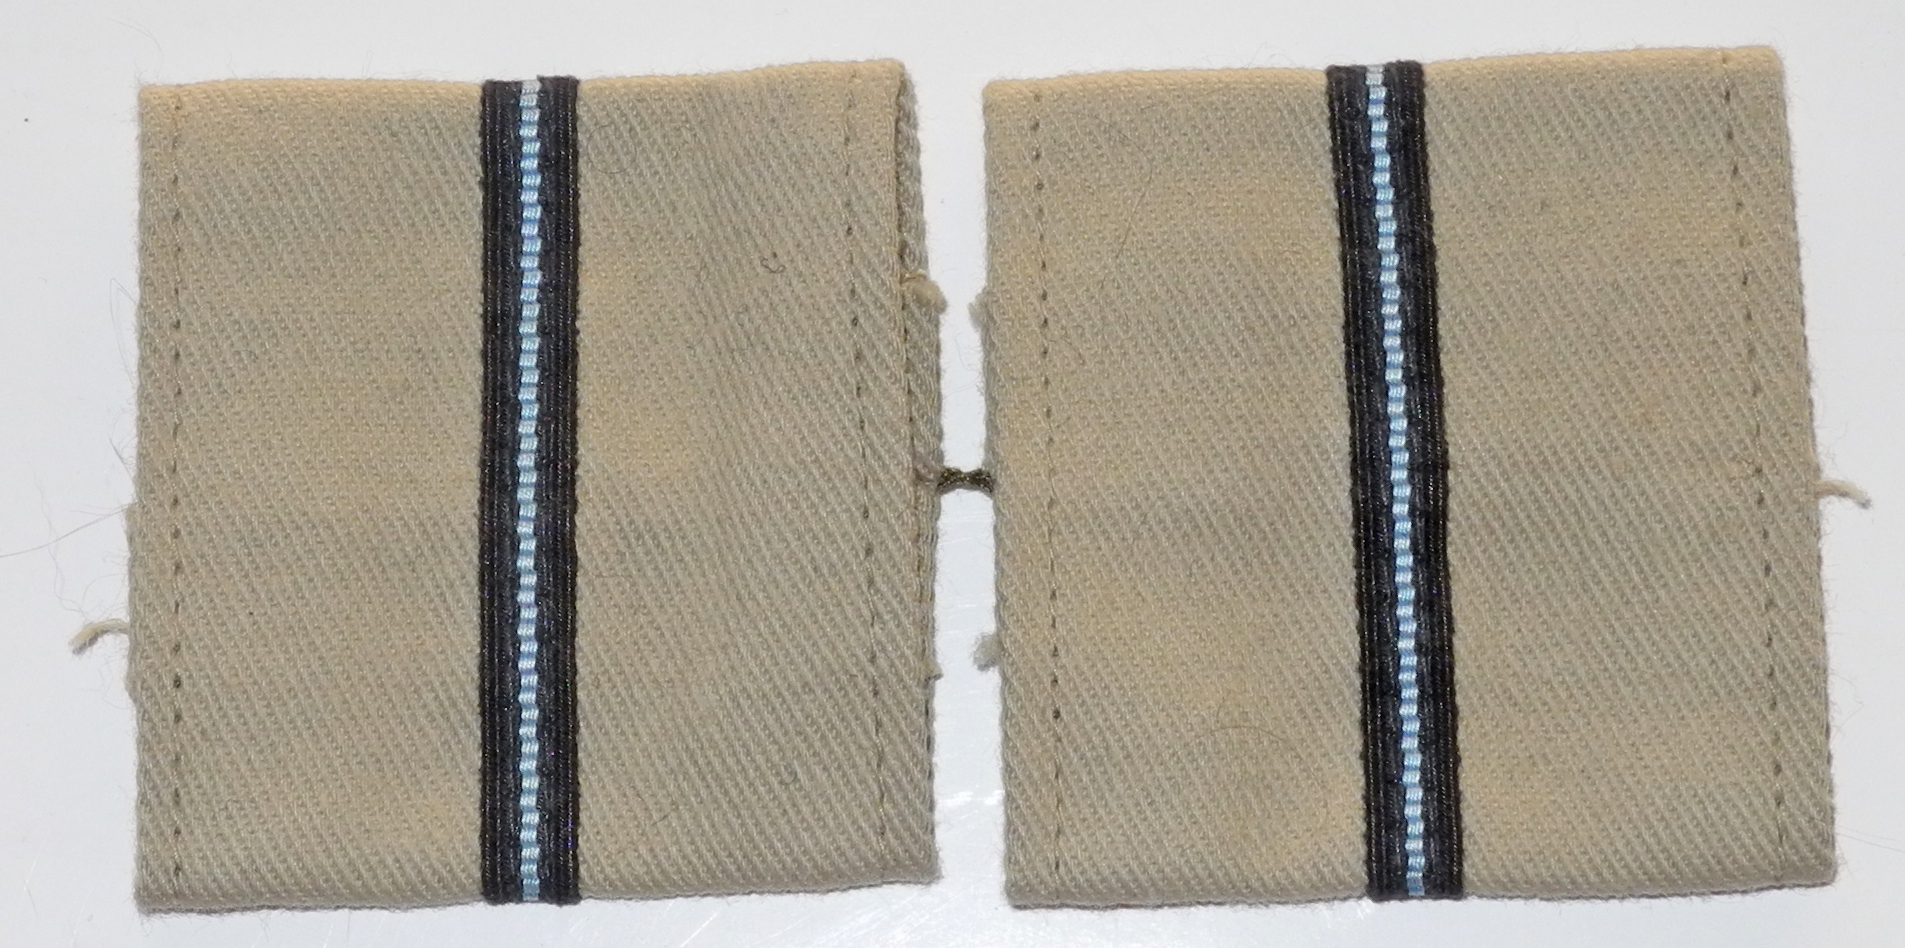 WWII KD rank slides for Pilot Officer